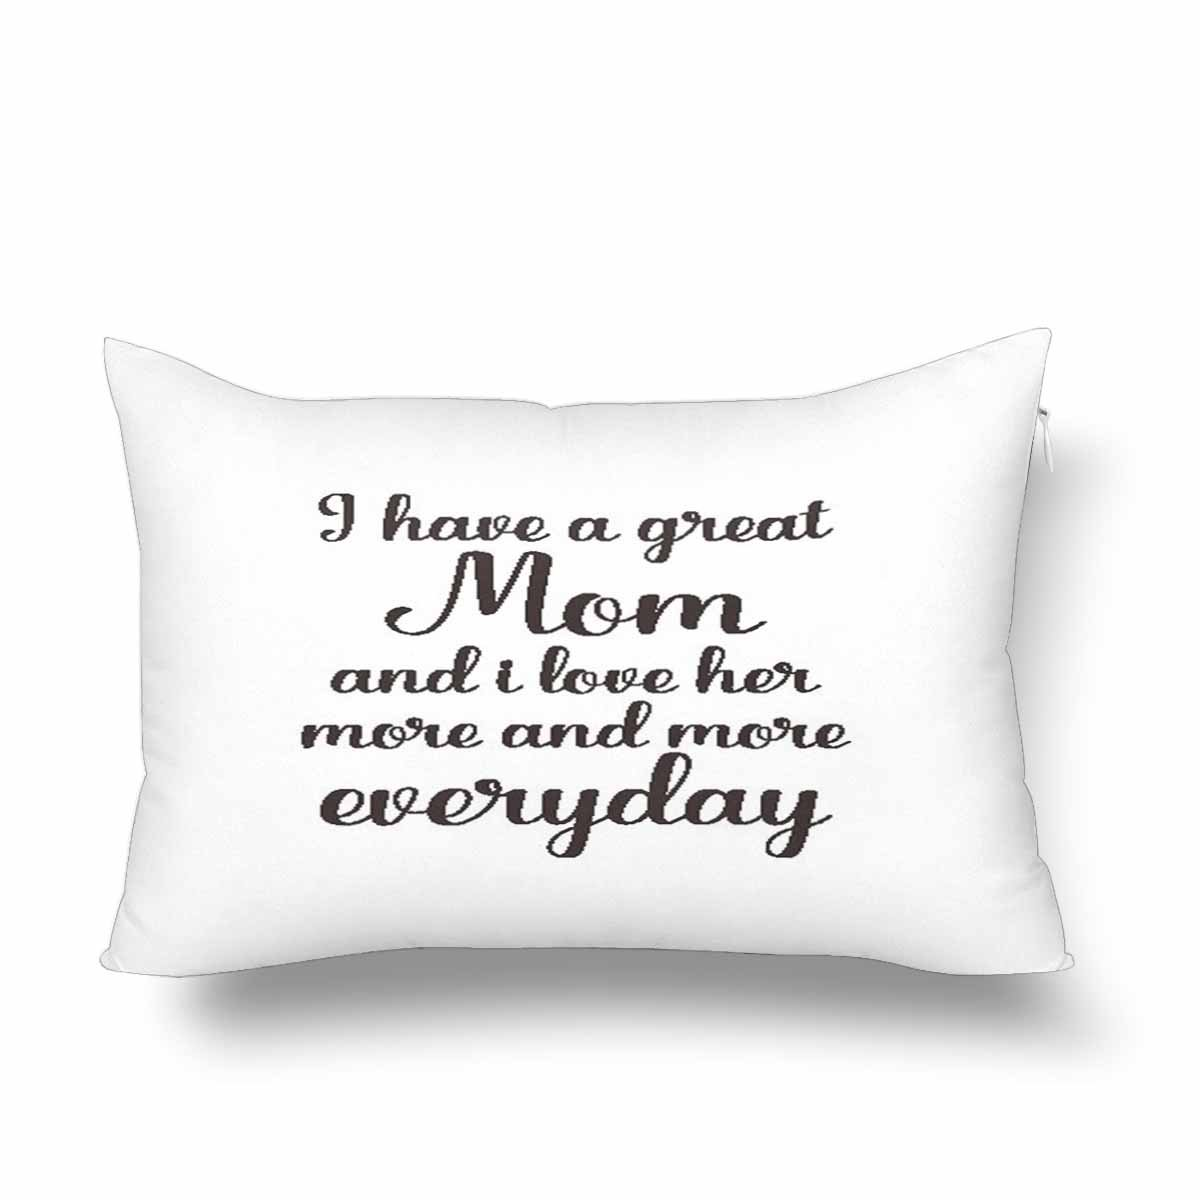 InterestPrint Mother¡¯S Day I Have a Great Mom I Love Her More and More Everyday Pillow Cases Pillowcase 16x24, Rectangle Pillow Covers Protector for Home Couch Sofa Bedroom Decoration